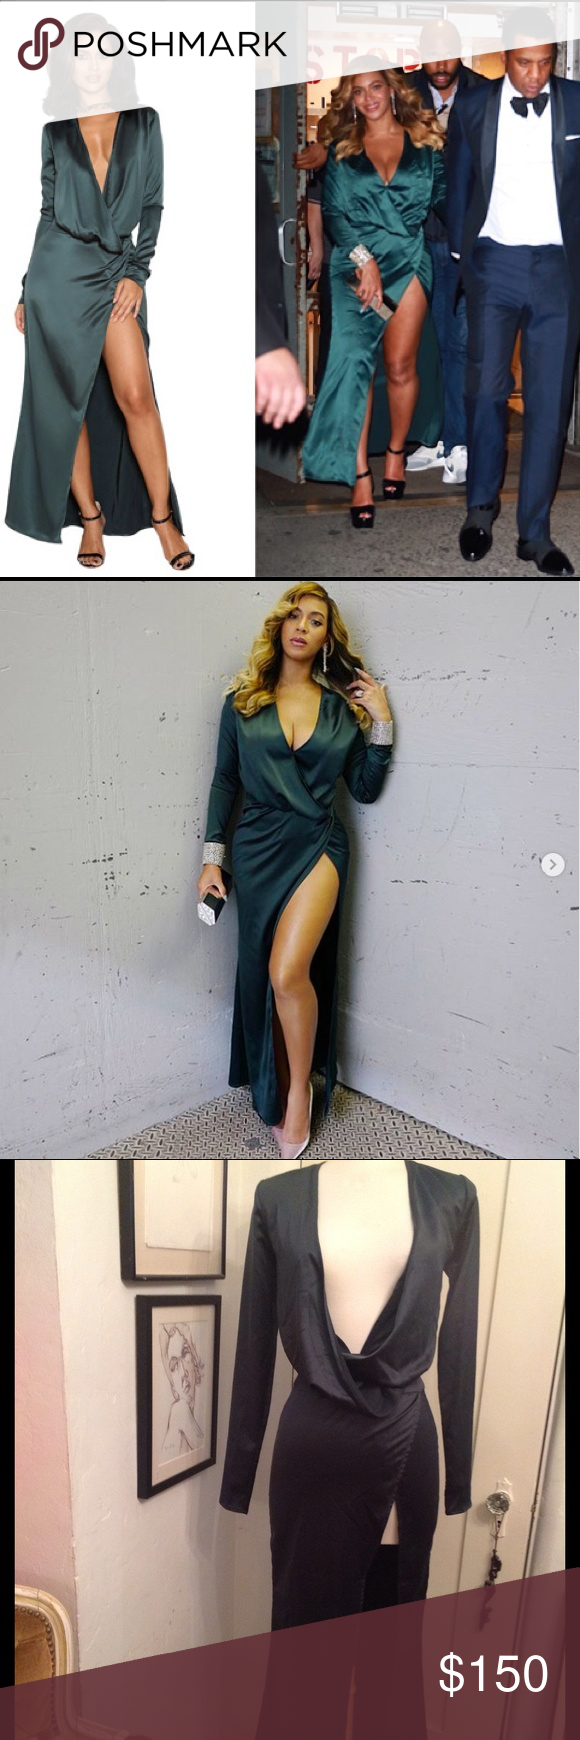 Dark Green House Of Cb Serafina Beyonce Dress Beautiful In Heavy Weight Satin Very Slimming Gorgeously D With